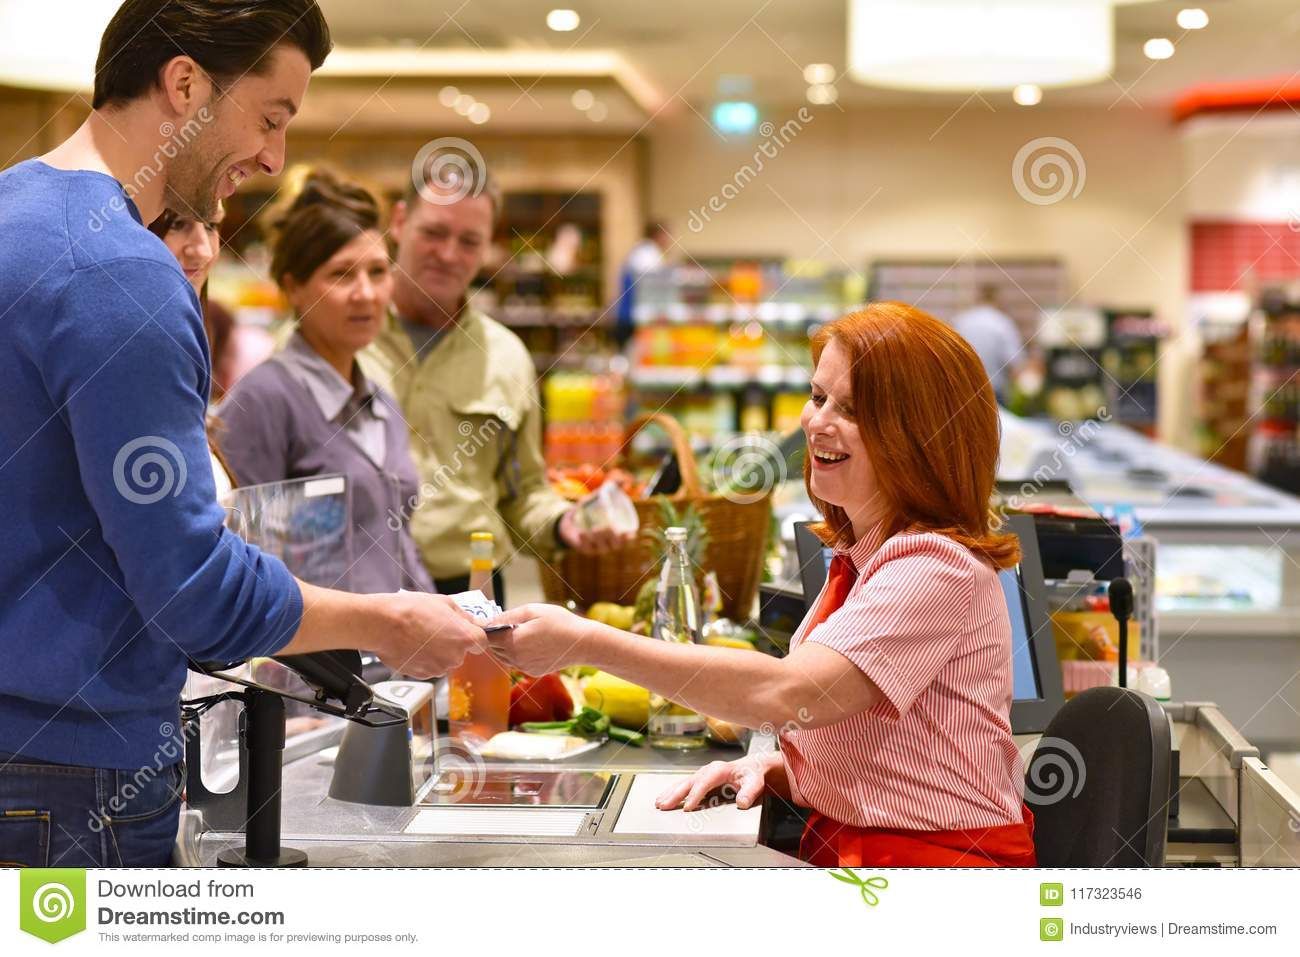 People shopping for food in the supermarket - checkout paying